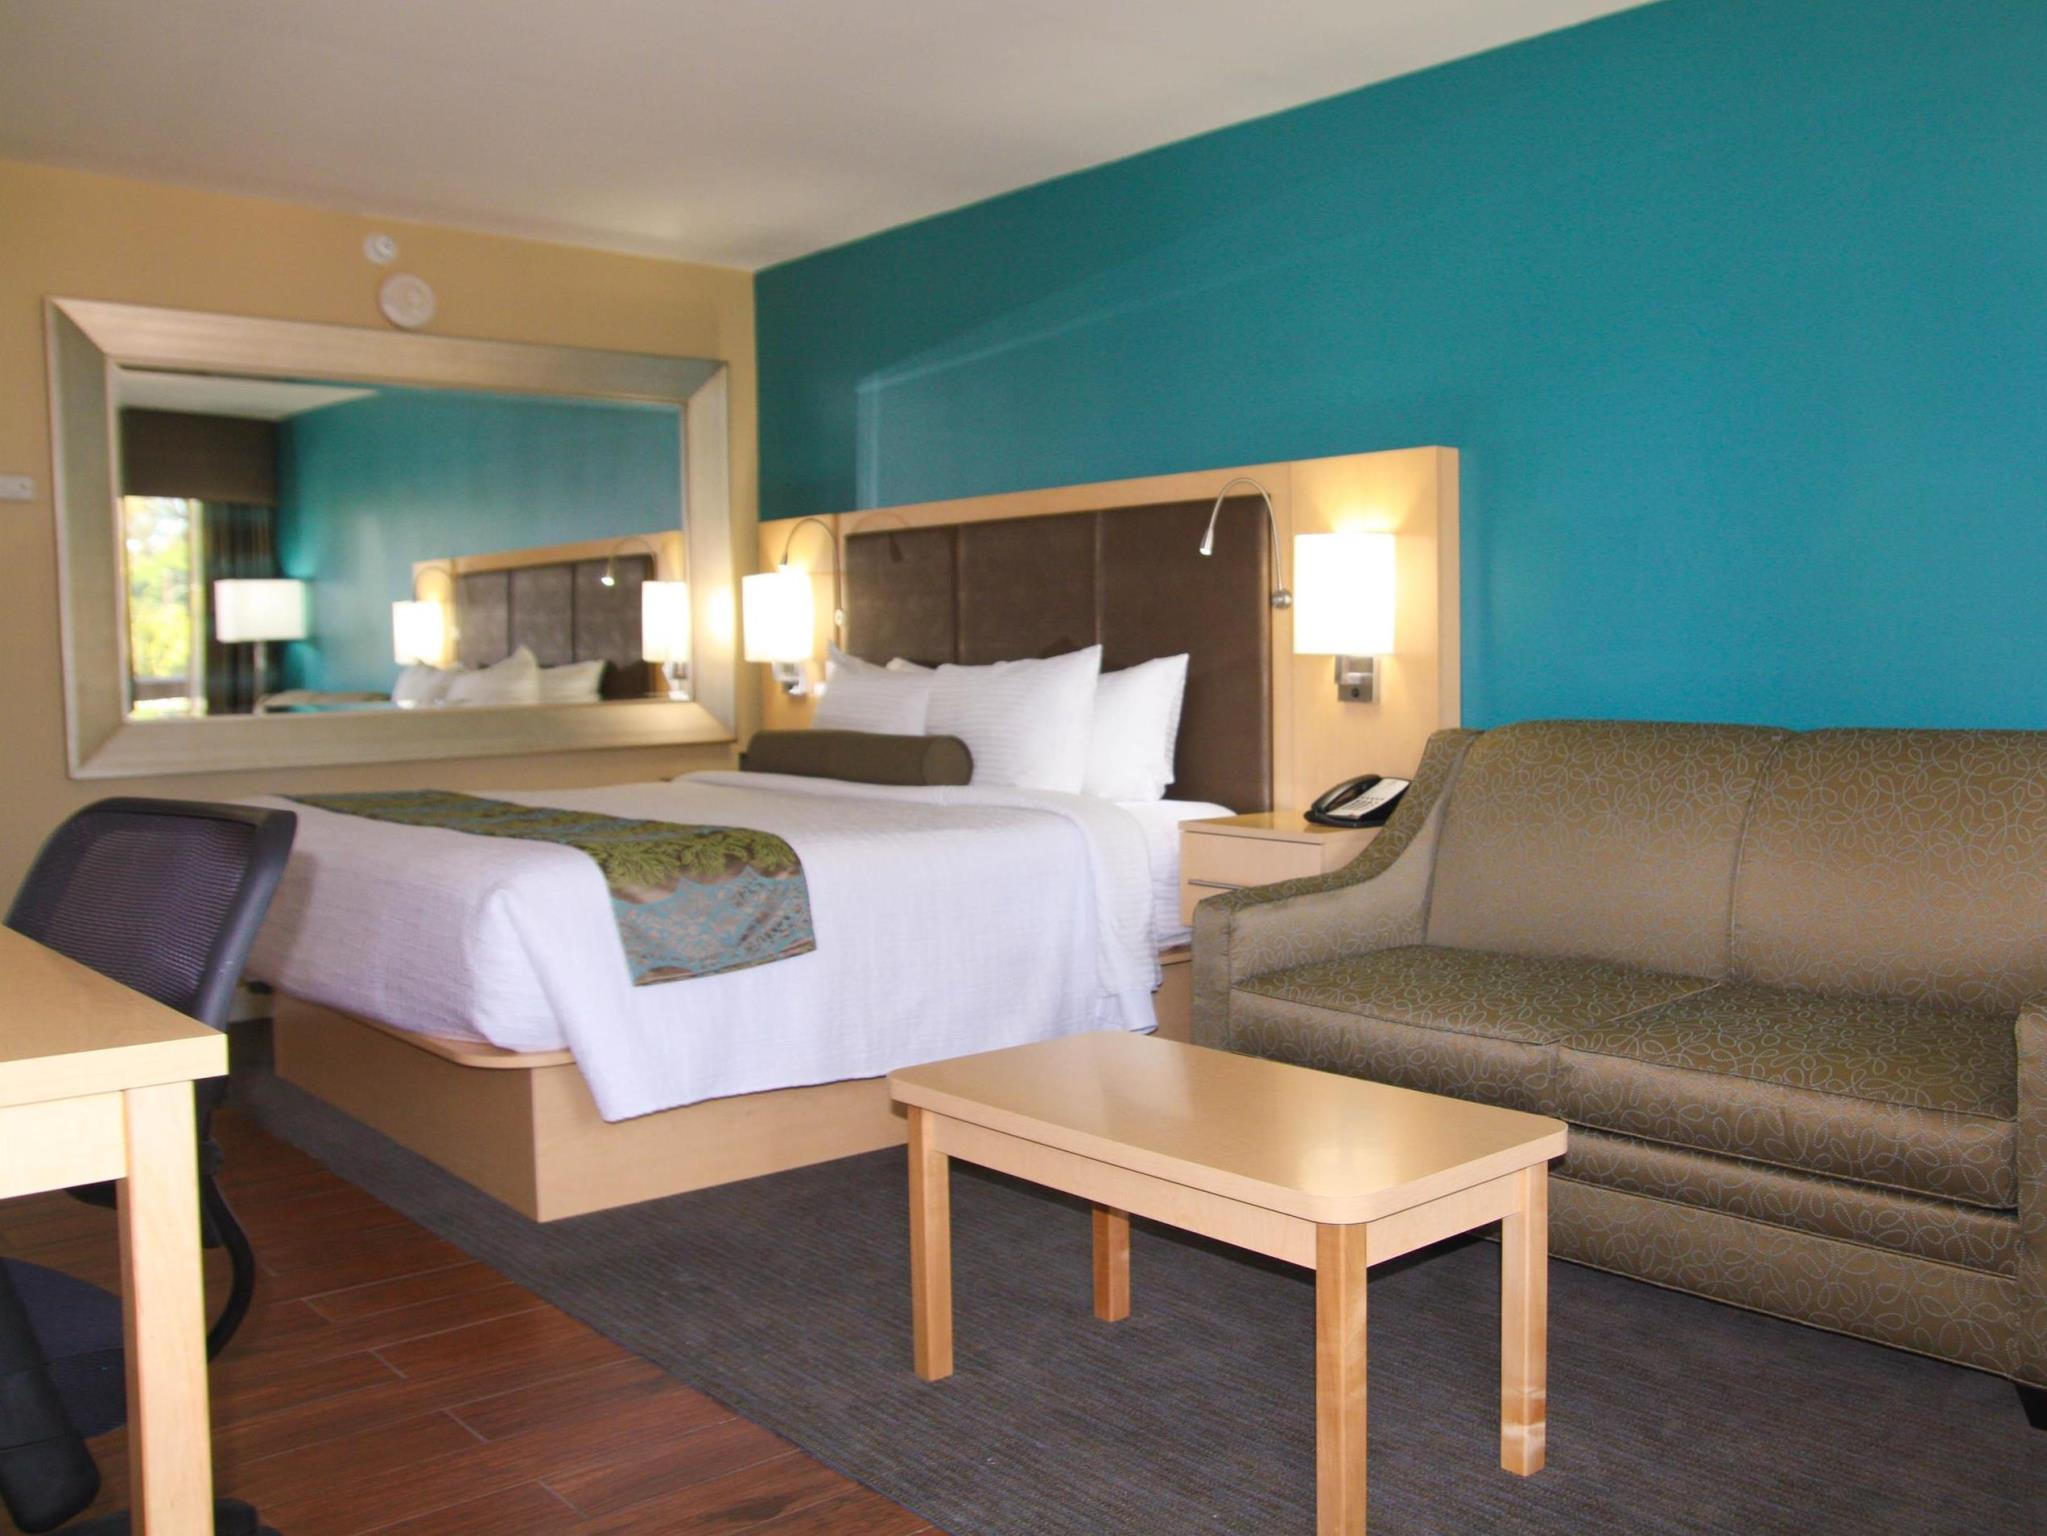 Suite with 1 King Bed, 2 Sofabeds with Shower - Disabled Access, No Smoking